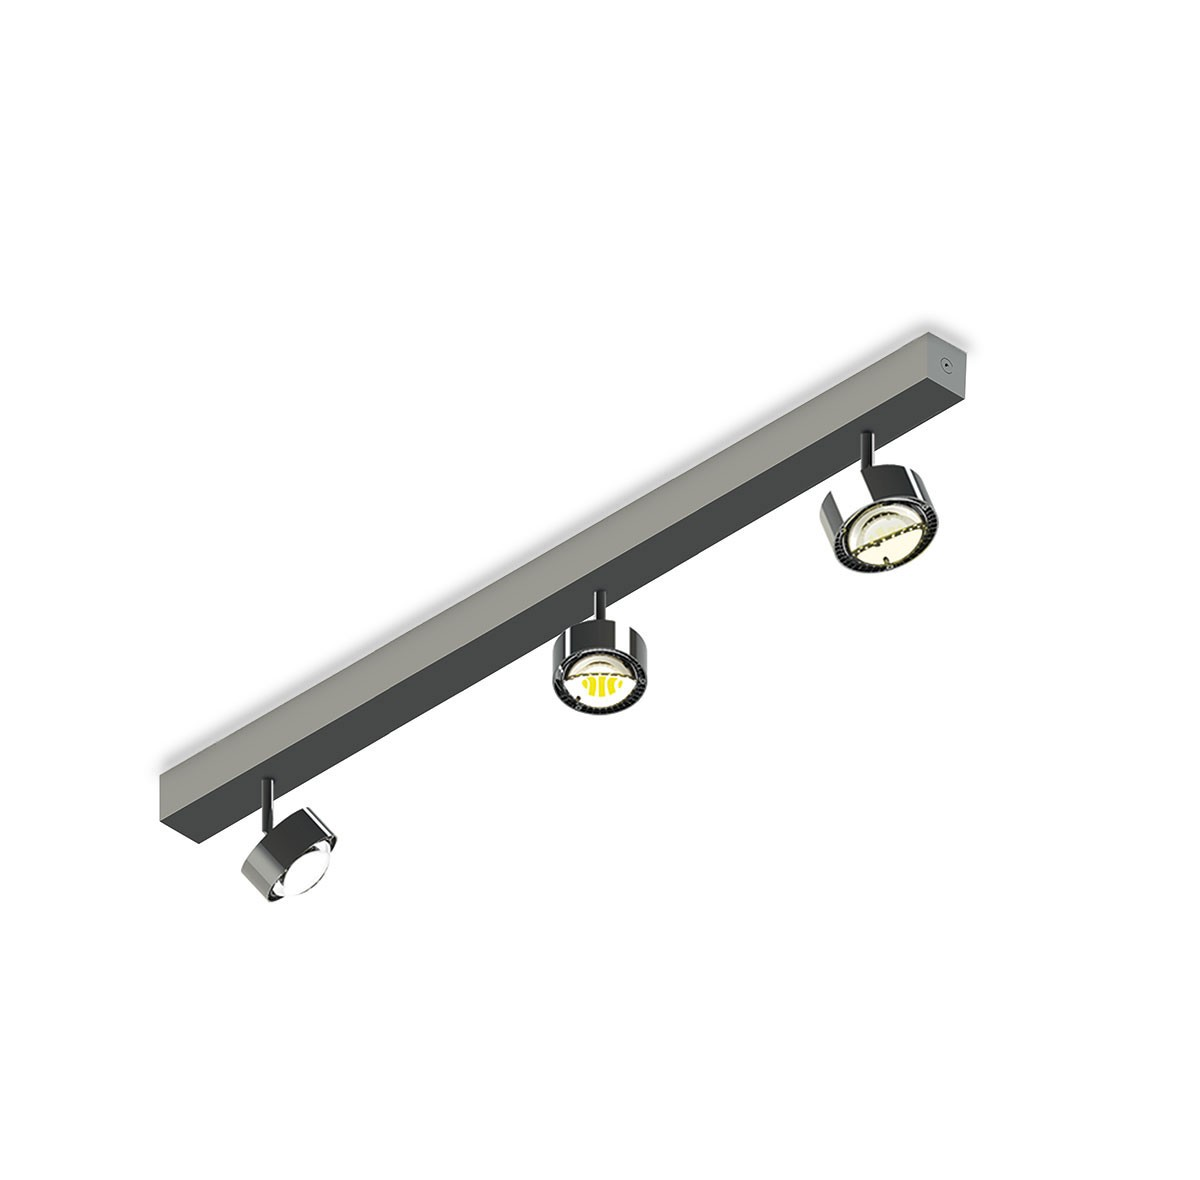 Top Light Puk Choice Turn Deckenleuchte, 85 cm